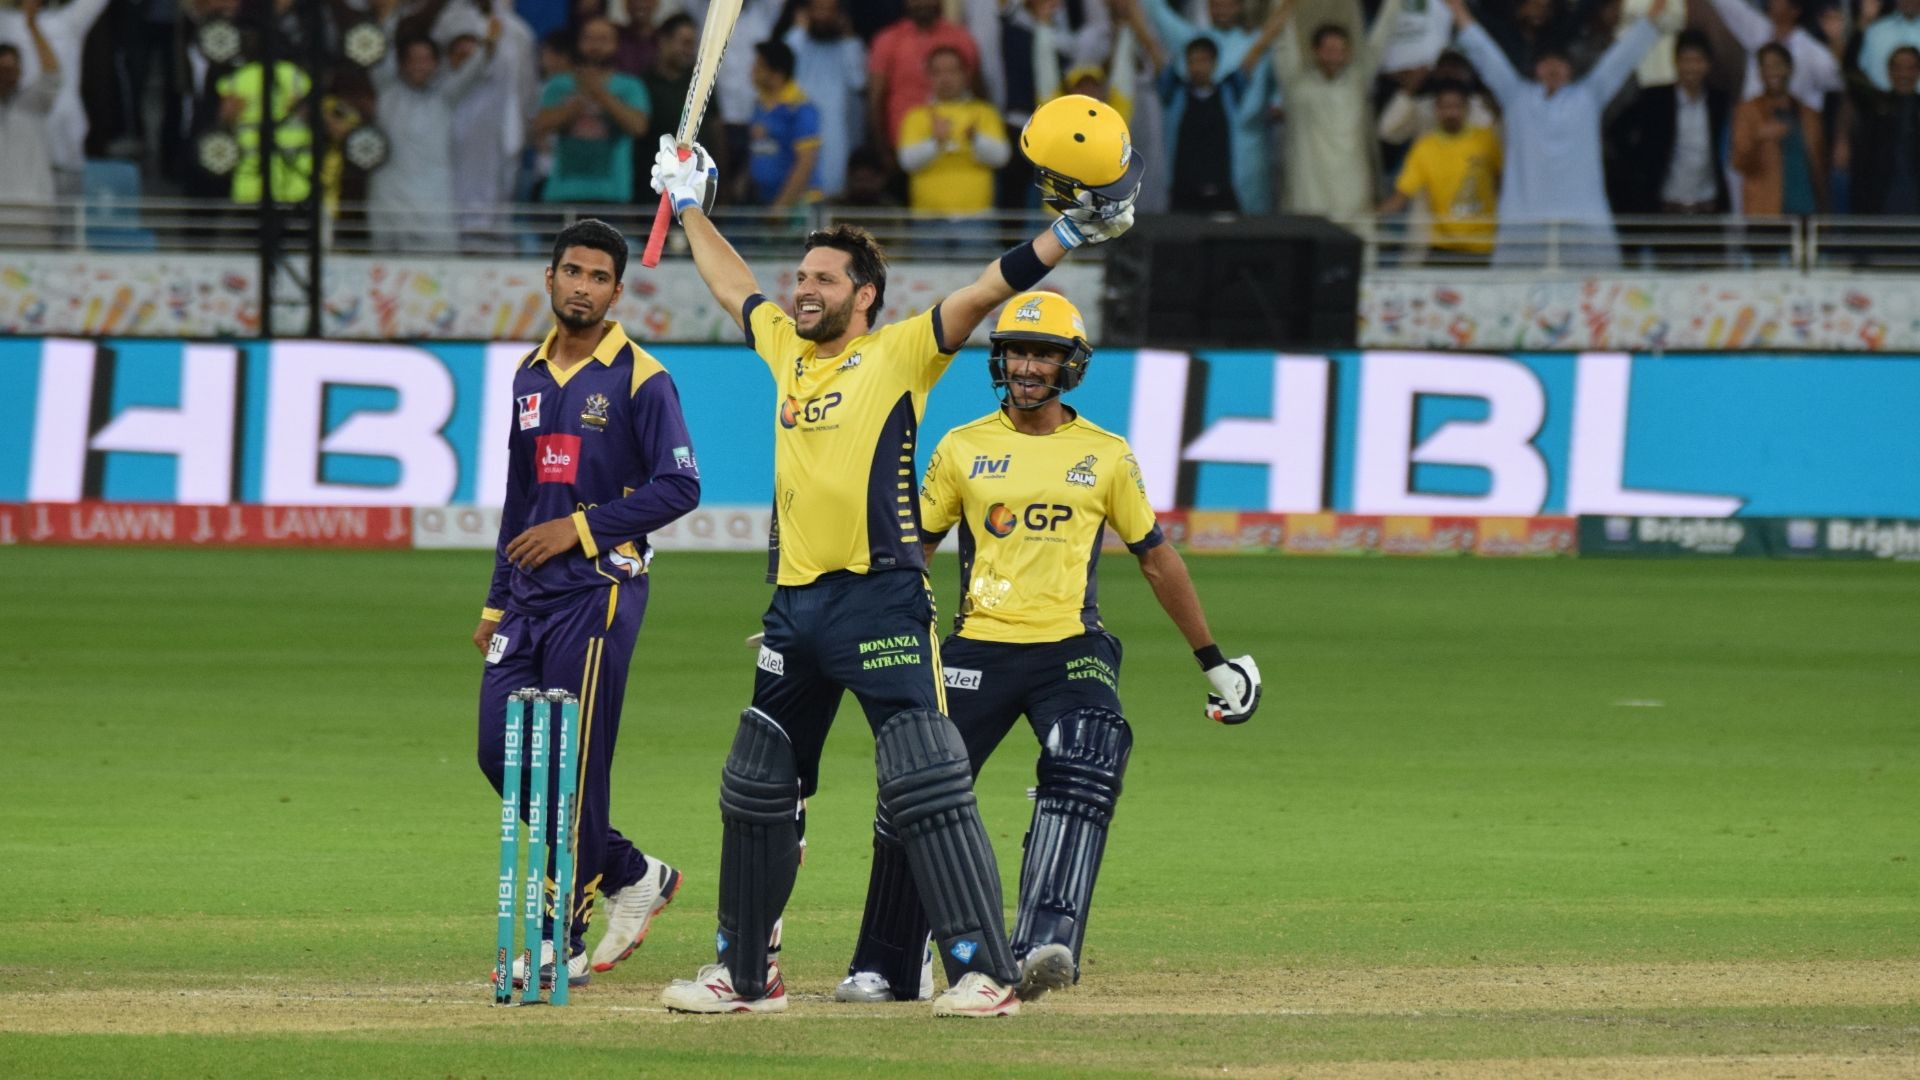 Vintage Afridi knock puts Peshawar in first place